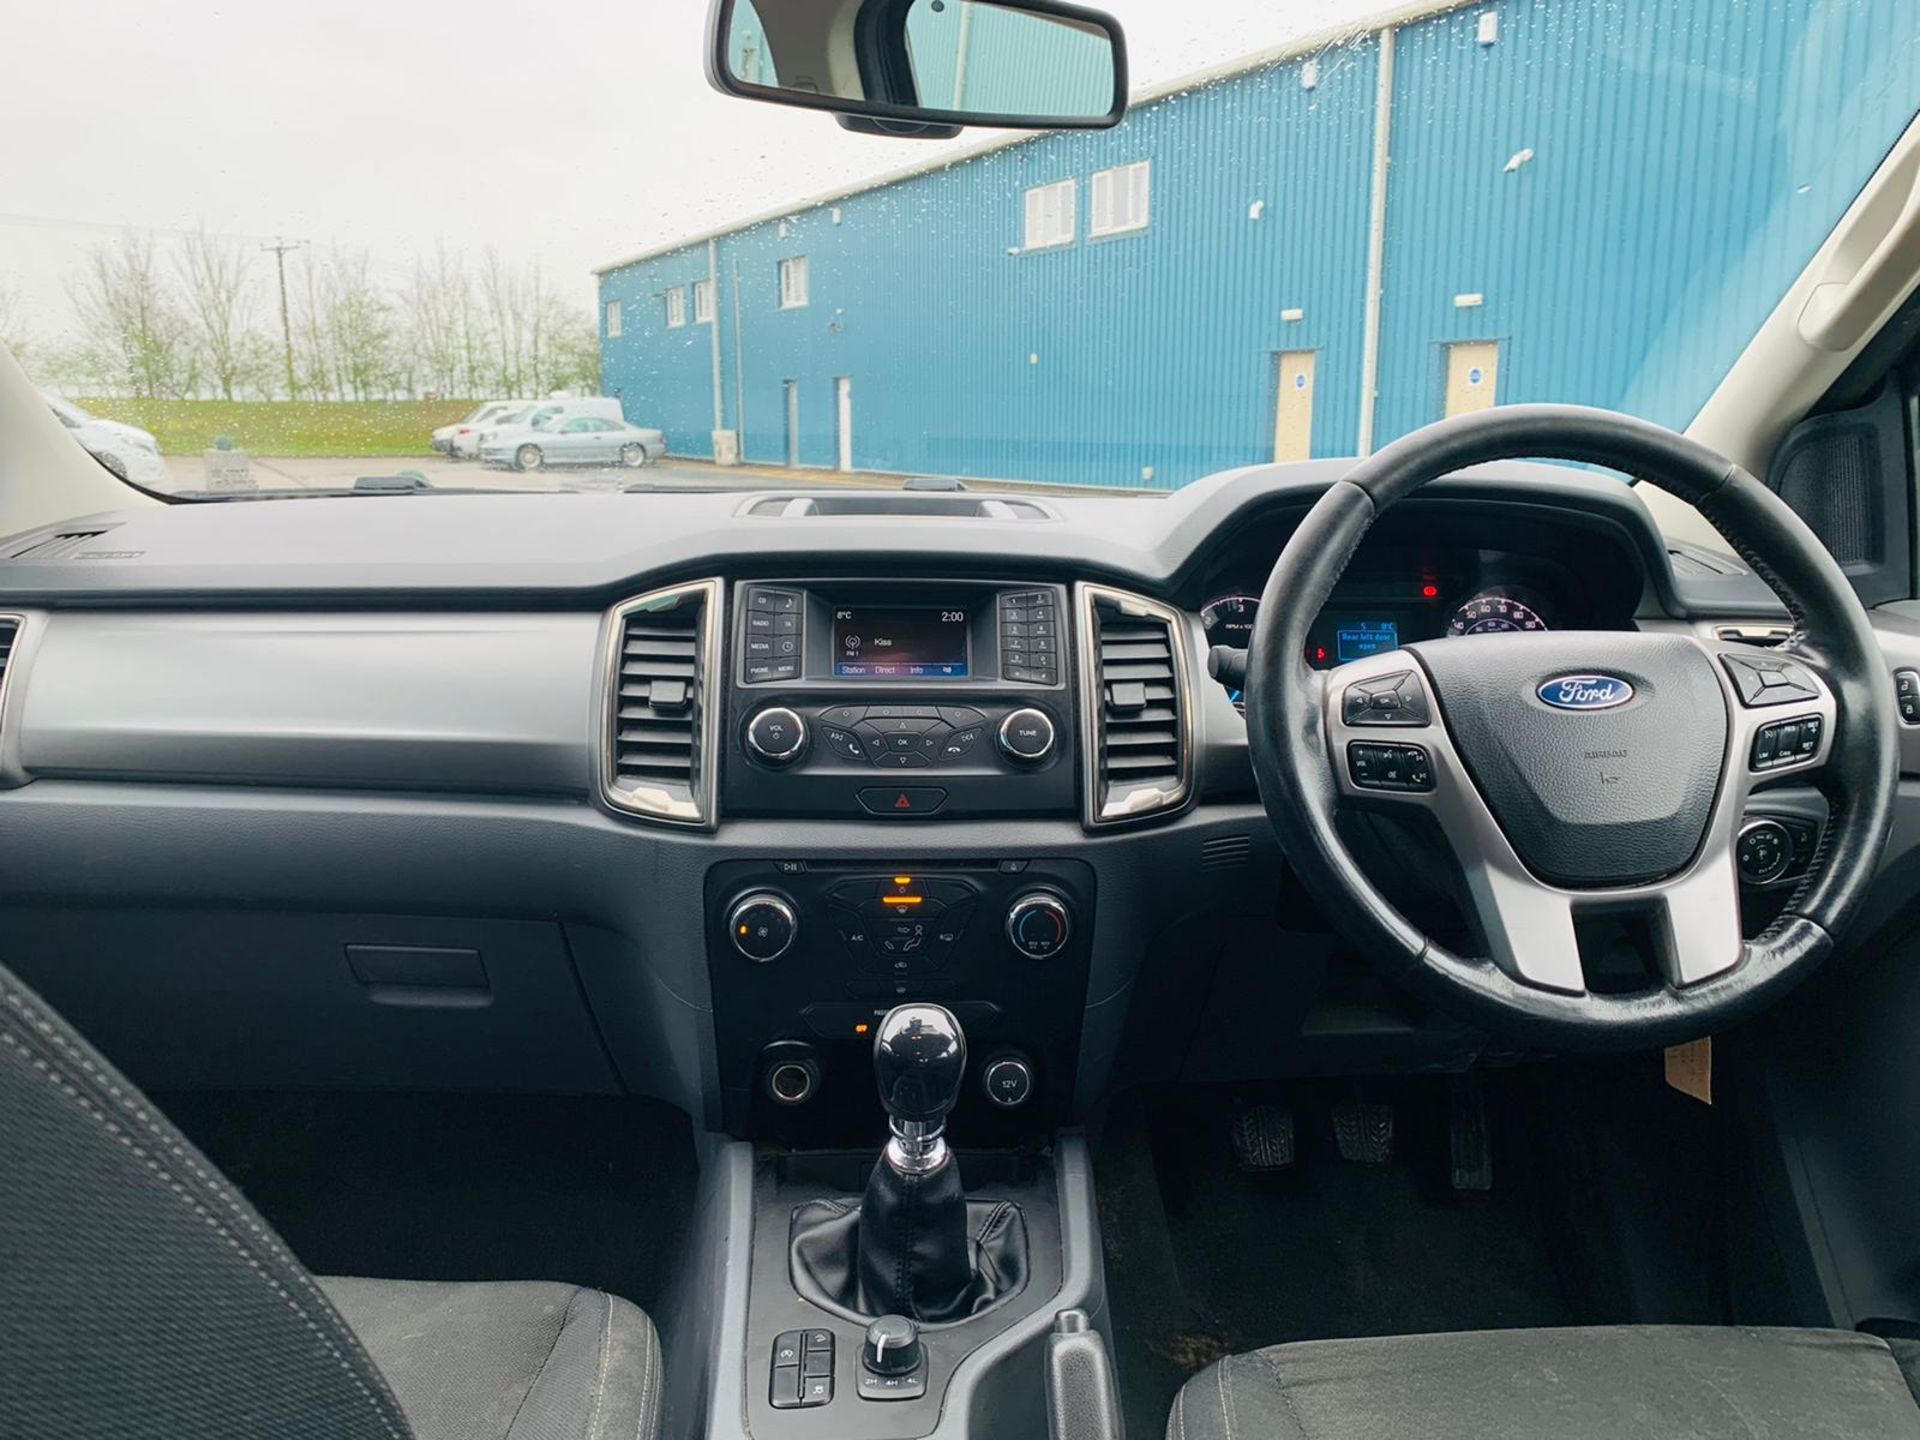 Ford Ranger 2.2 TDCI XLT 4x4 Double Cab - 2017 Model - Euro 6 - ULEZ Compliant - Service History - Image 8 of 24